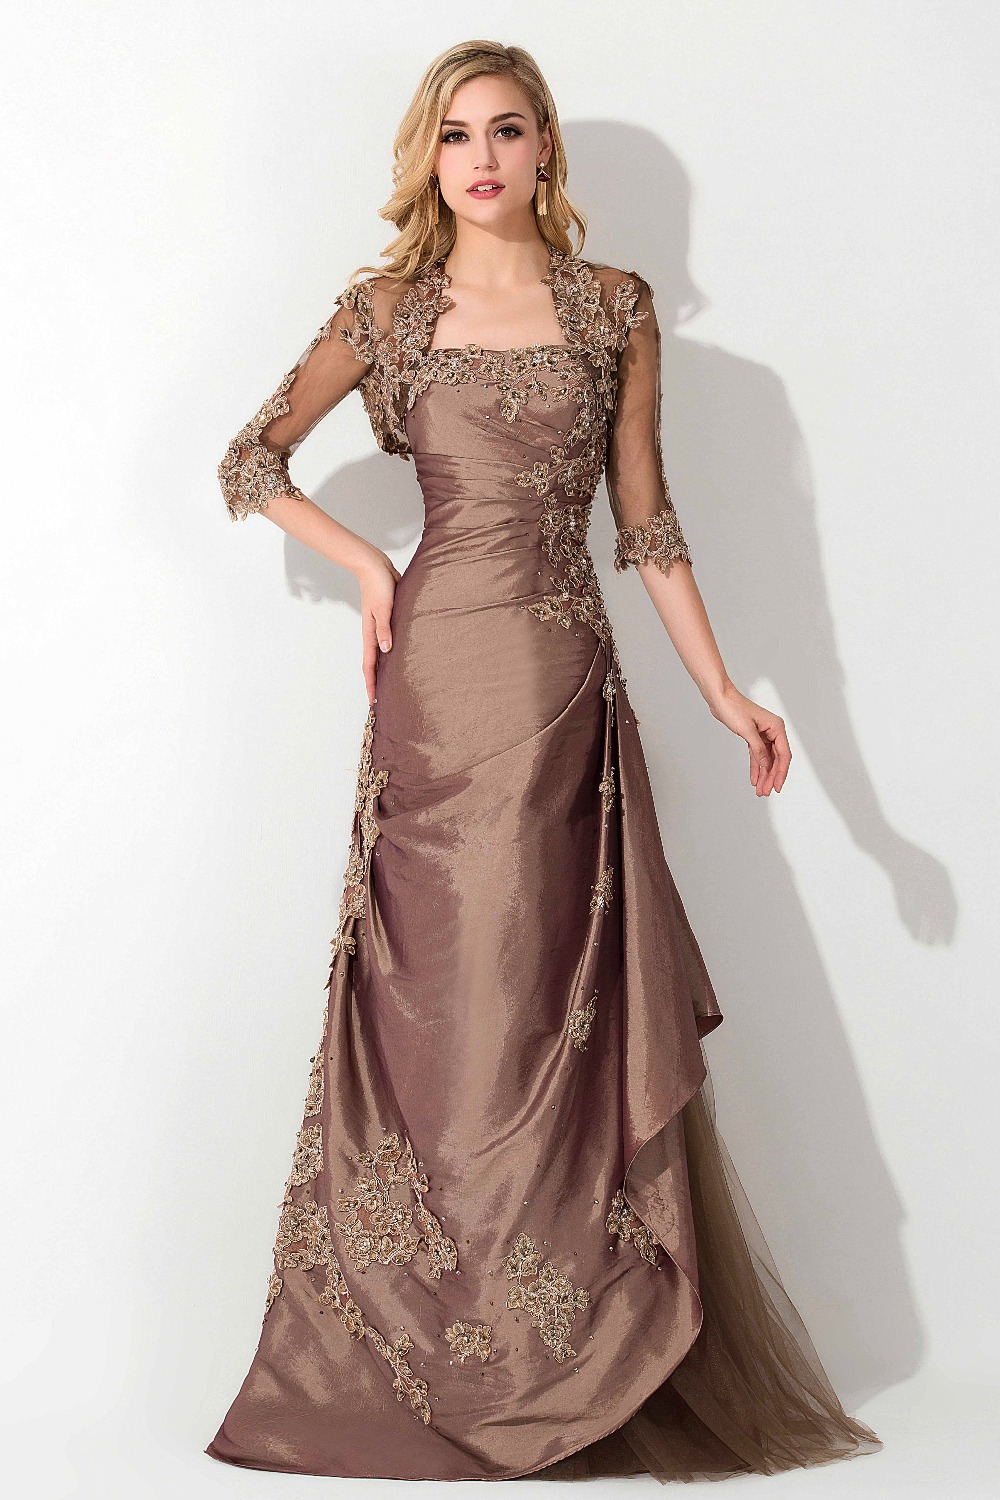 US $125.66 42% OFF|Elegant Brown Plus Size Mother Of The Bride Dresses With  Lace Jacket Strapless Mermaid Long Mother Evening Gowns Half Sleeves-in ...